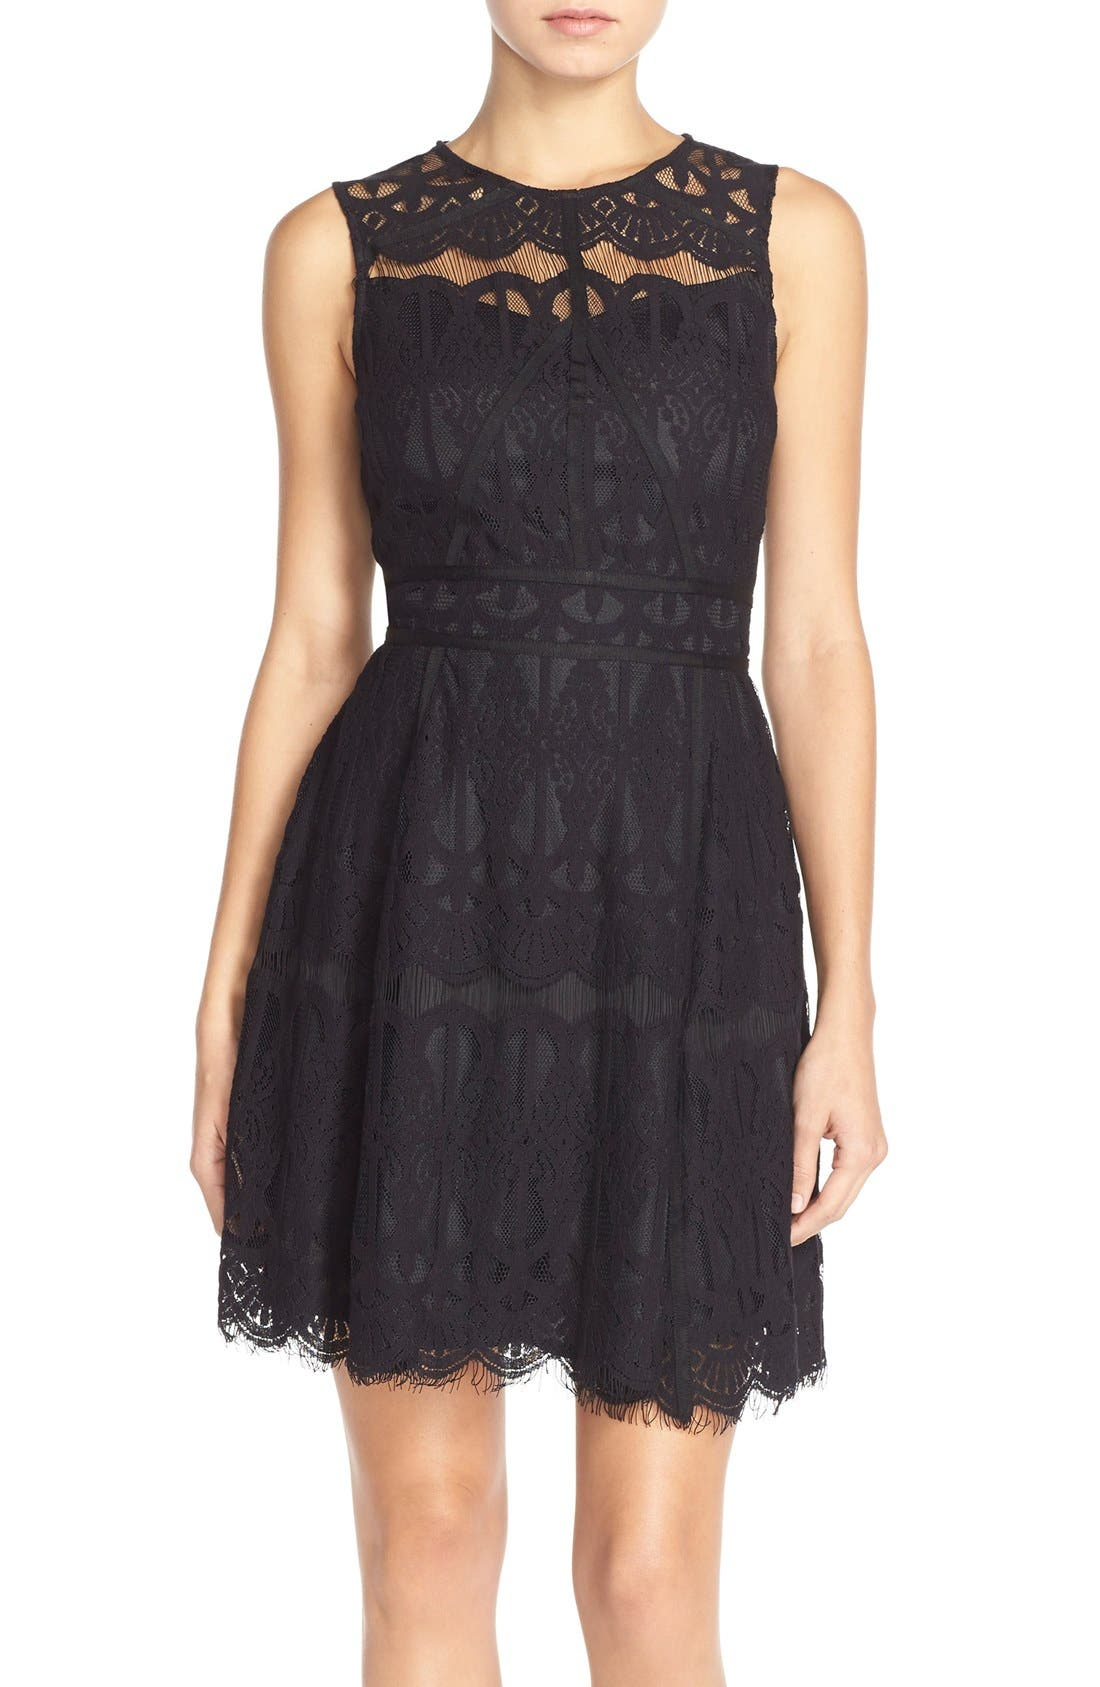 Alternate Image 1 Selected - Adelyn Rae Illusion Yoke Lace Fit & Flare Dress